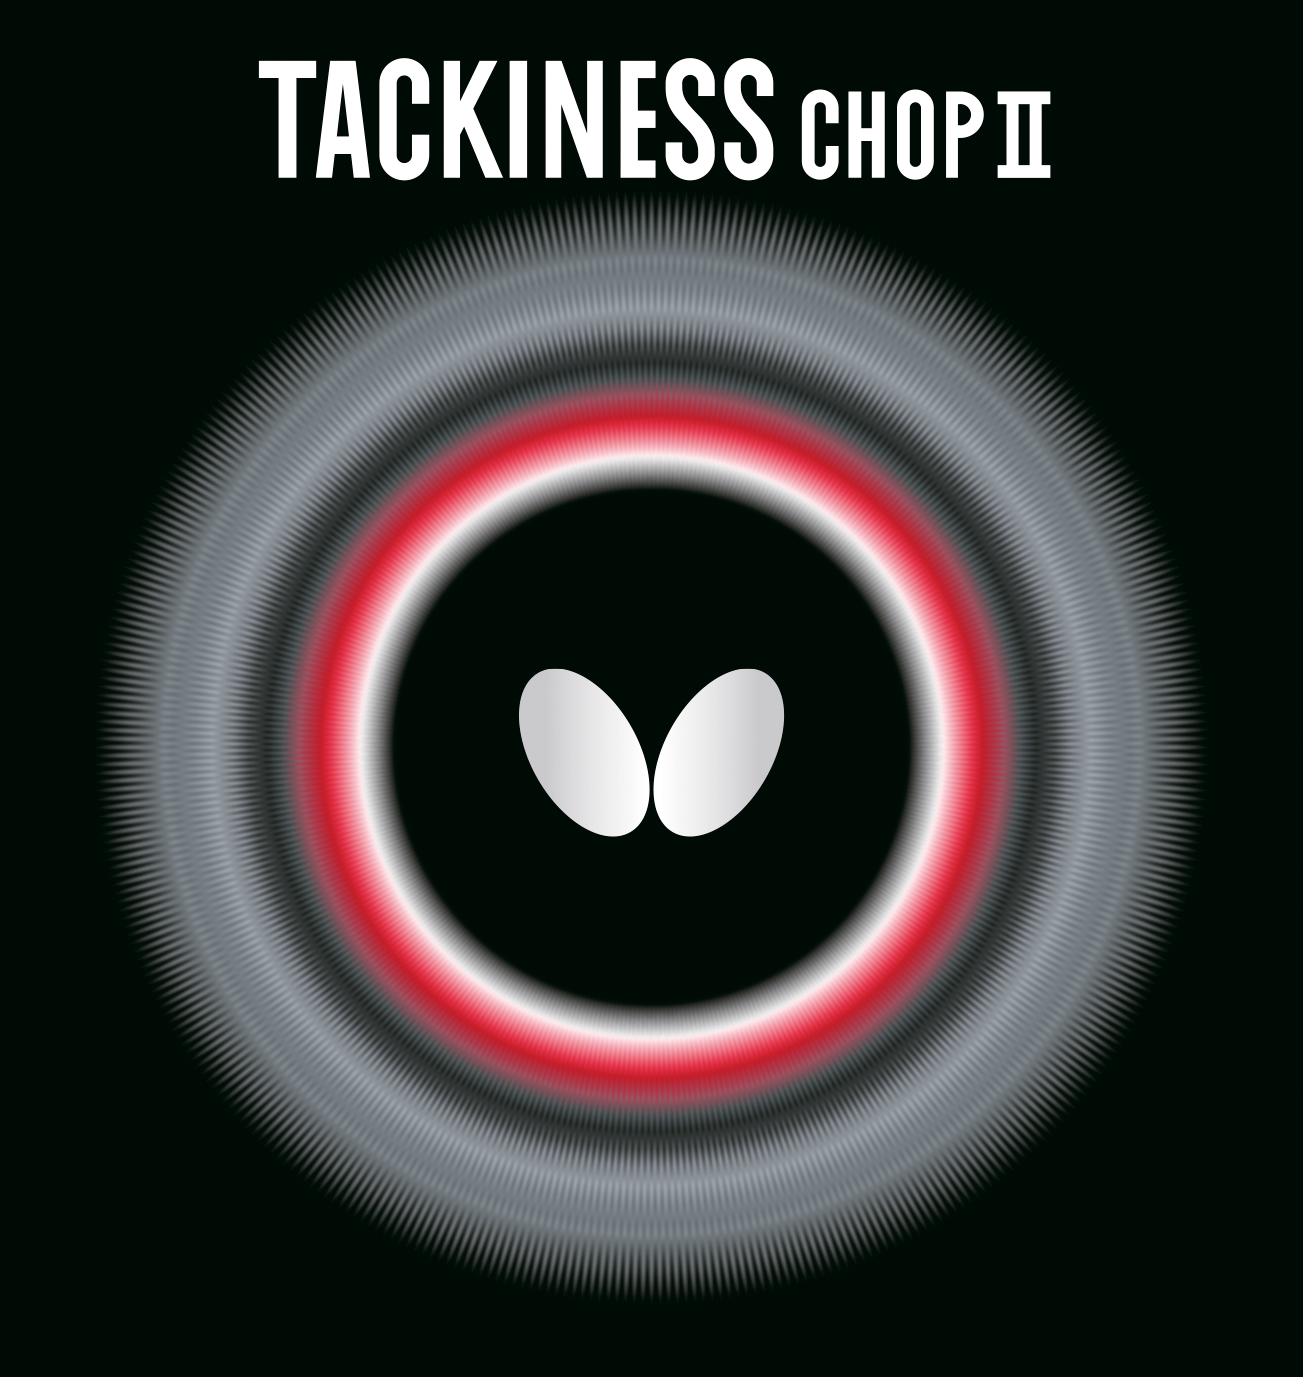 BUTTERFLY -Tackiness Chop II